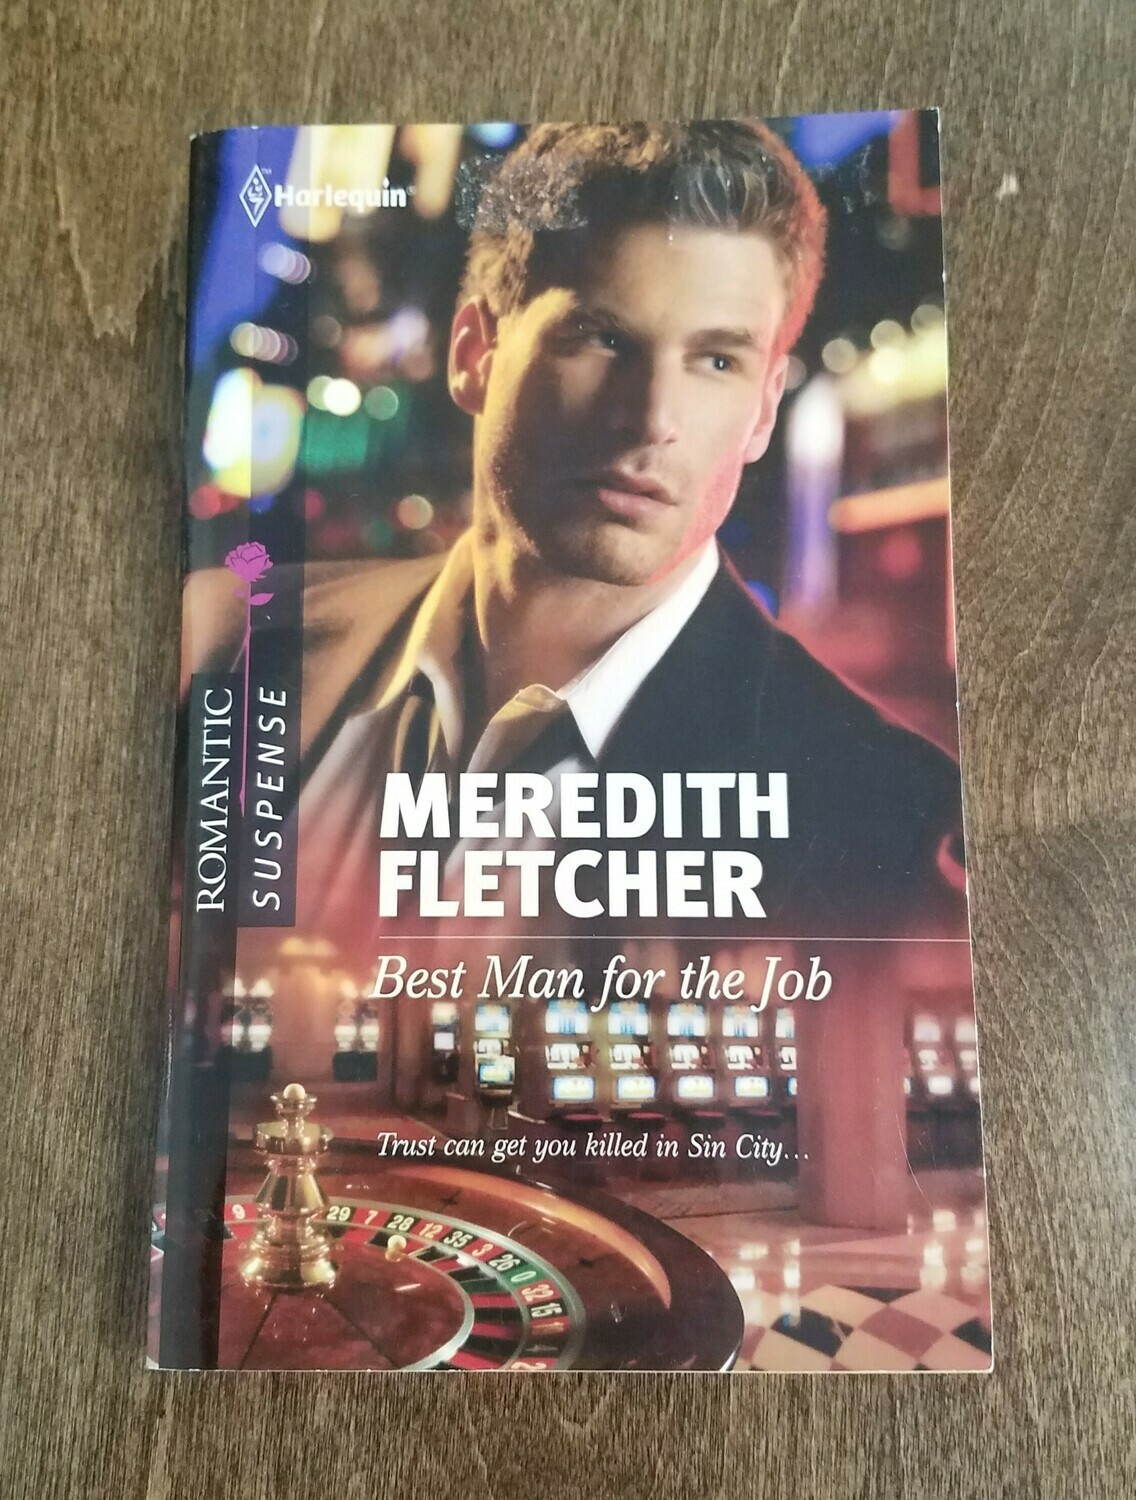 Best Man for the Job by Meredith Fletcher